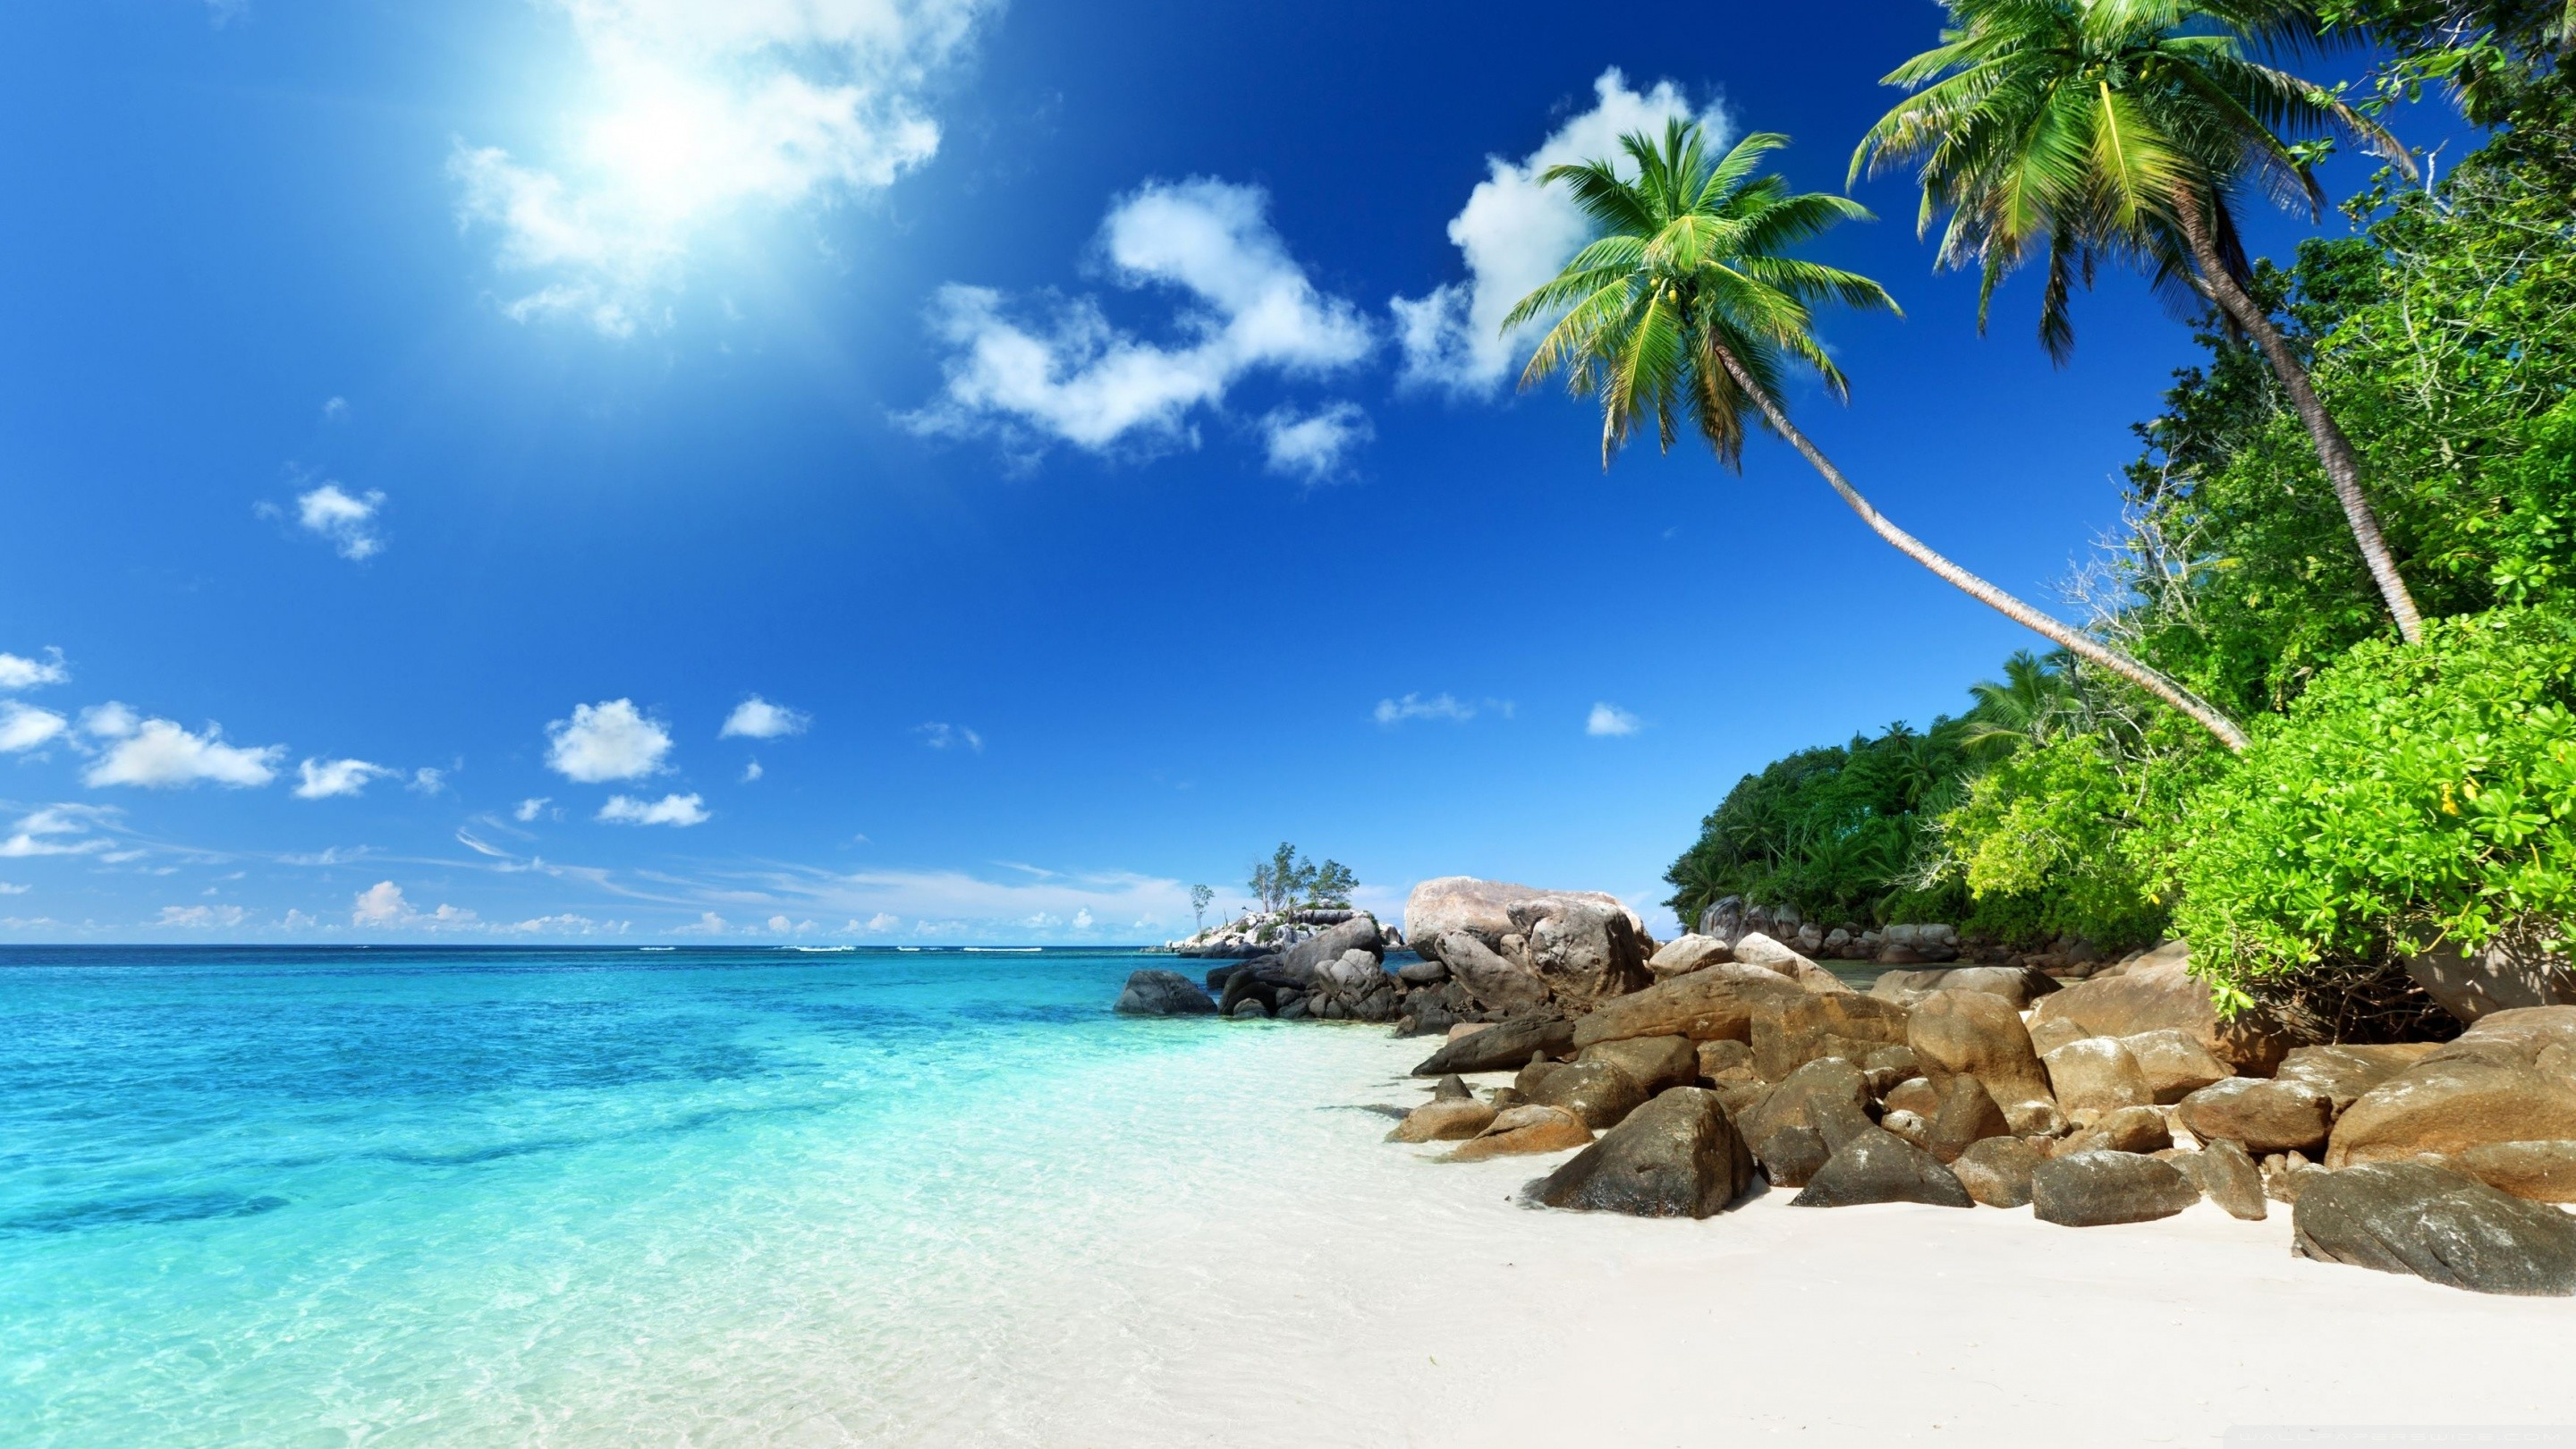 Beautiful Beach Wallpapers for your Desktop Mobile and Tablet